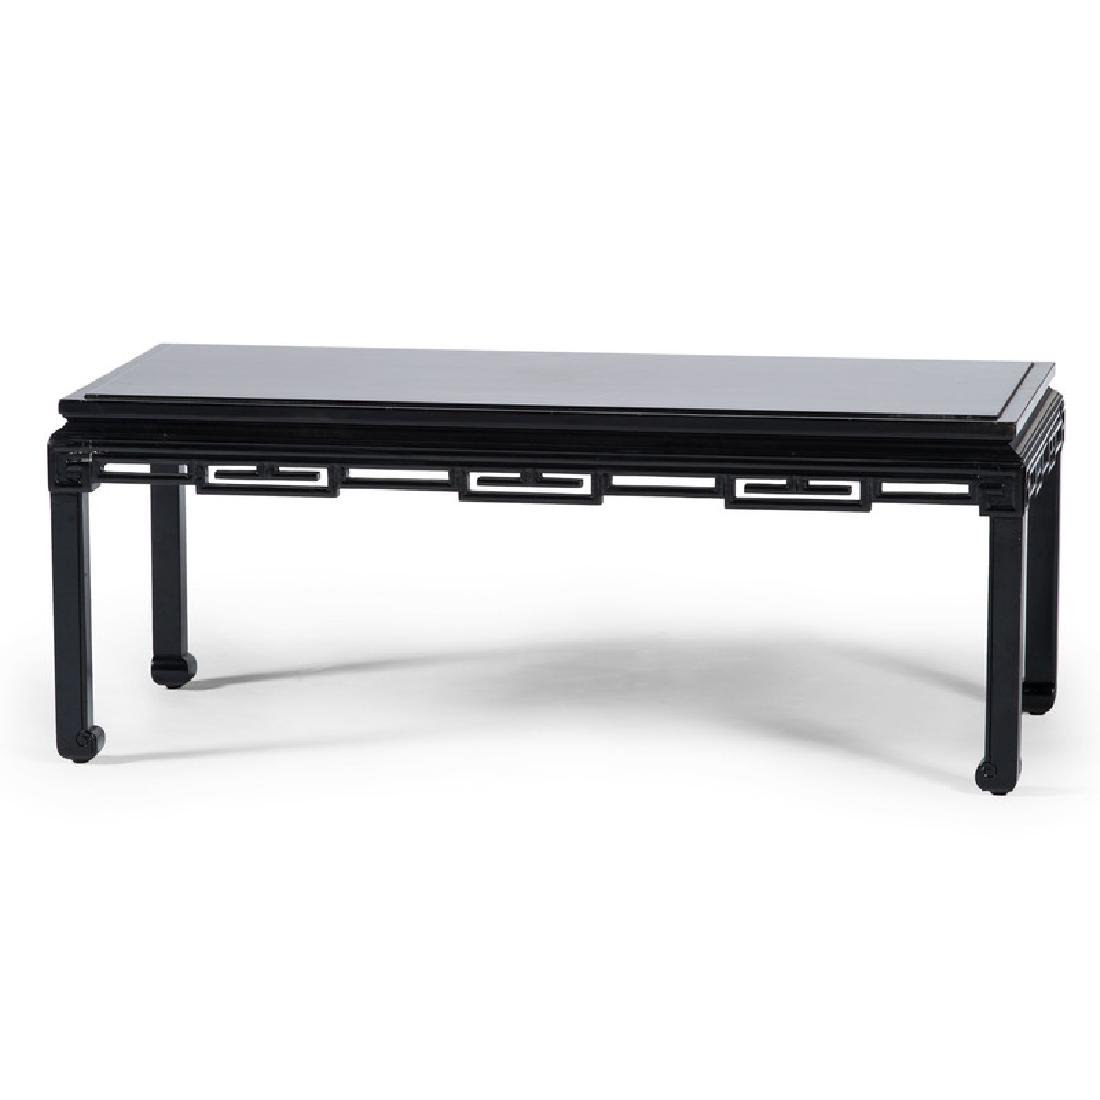 Chinese-style Coffee Table